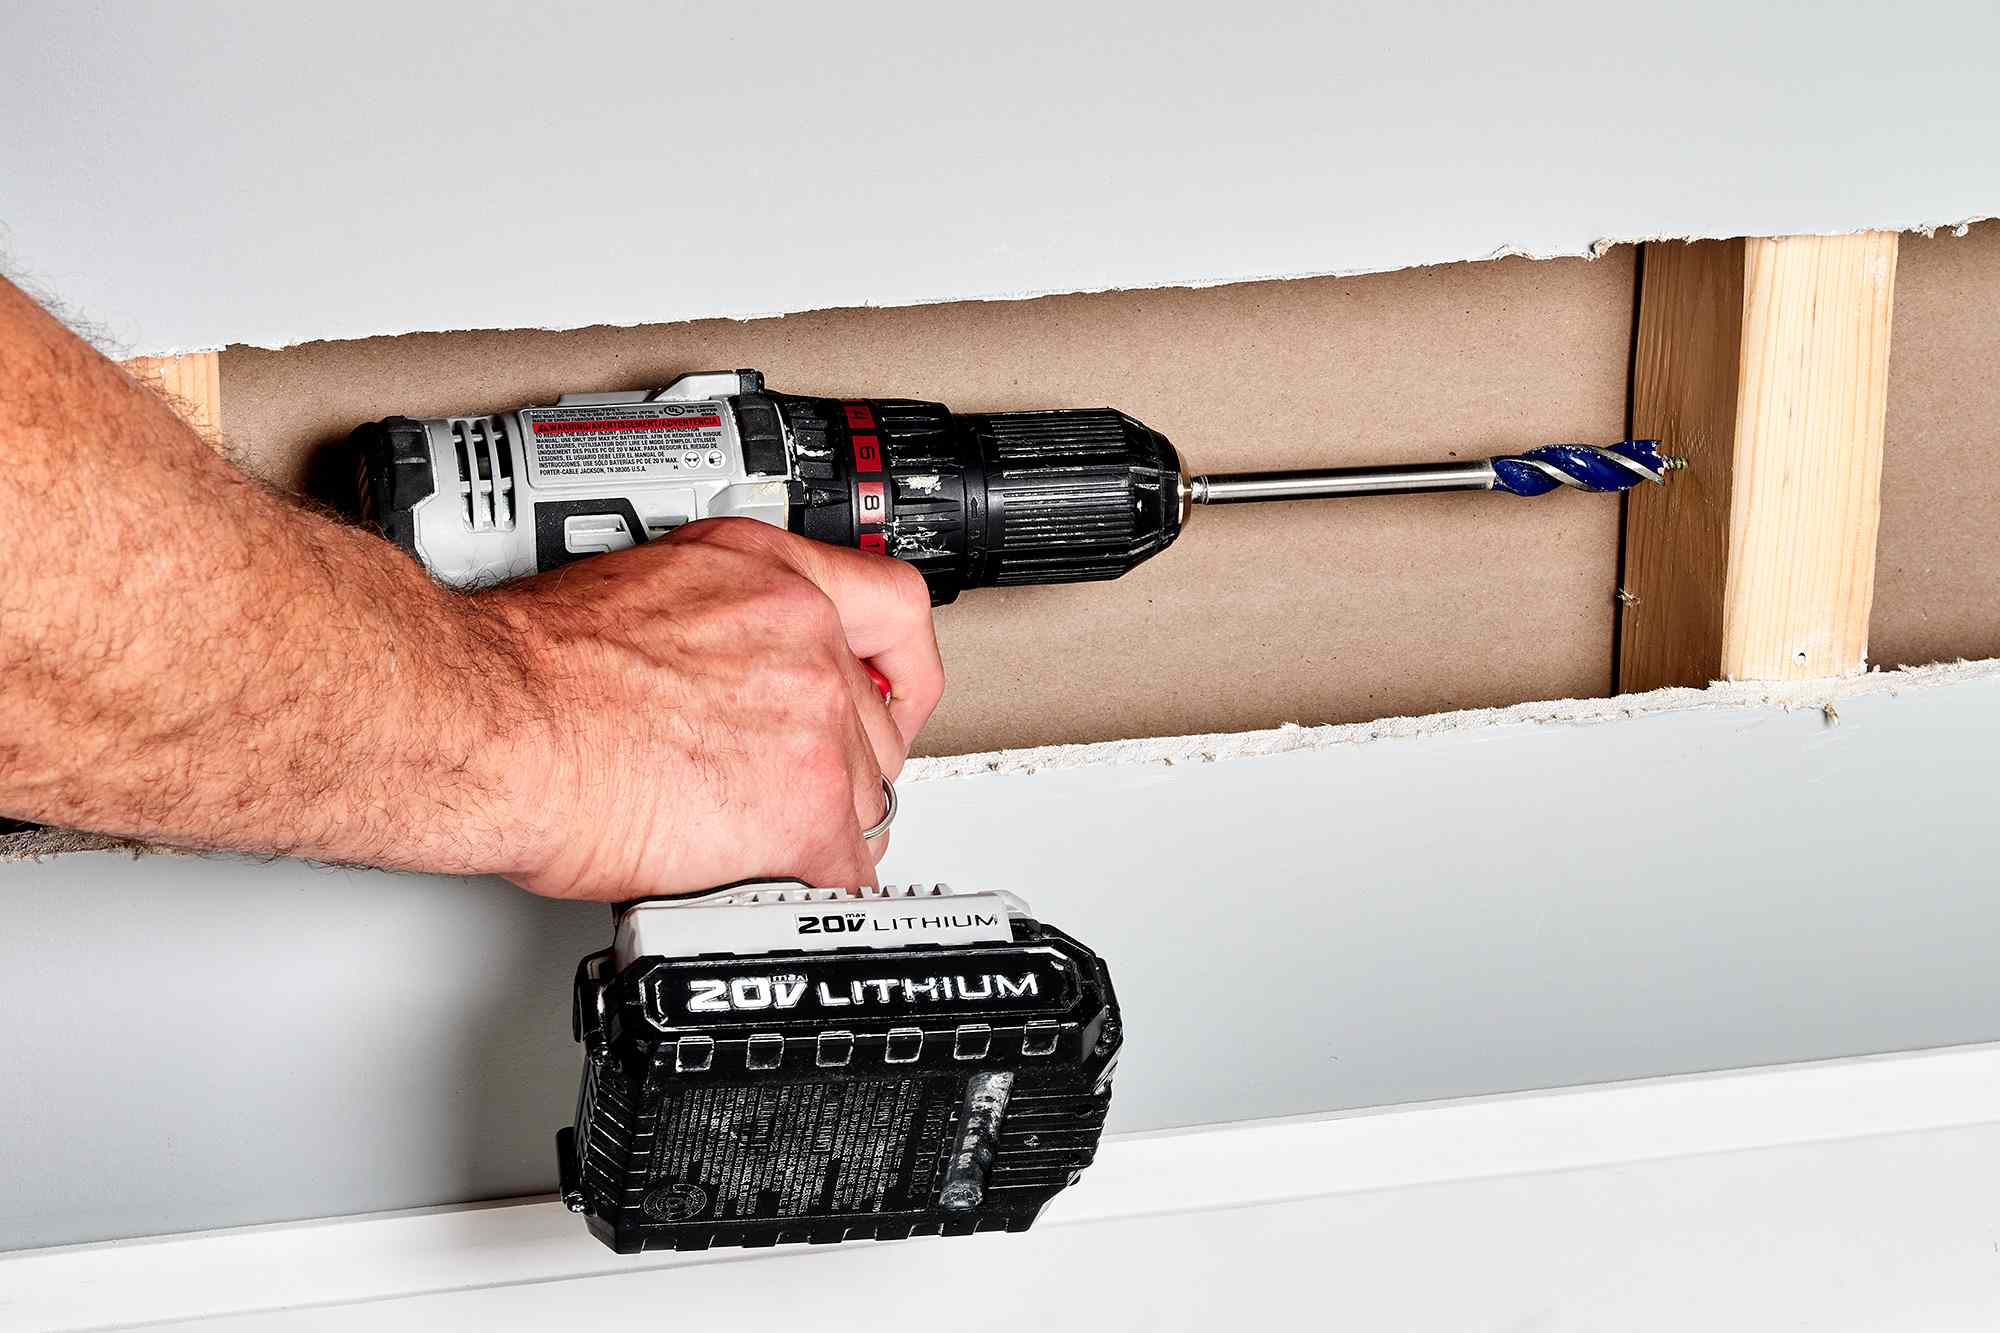 Drill driving holes in wall studs for the electrical wire to run through